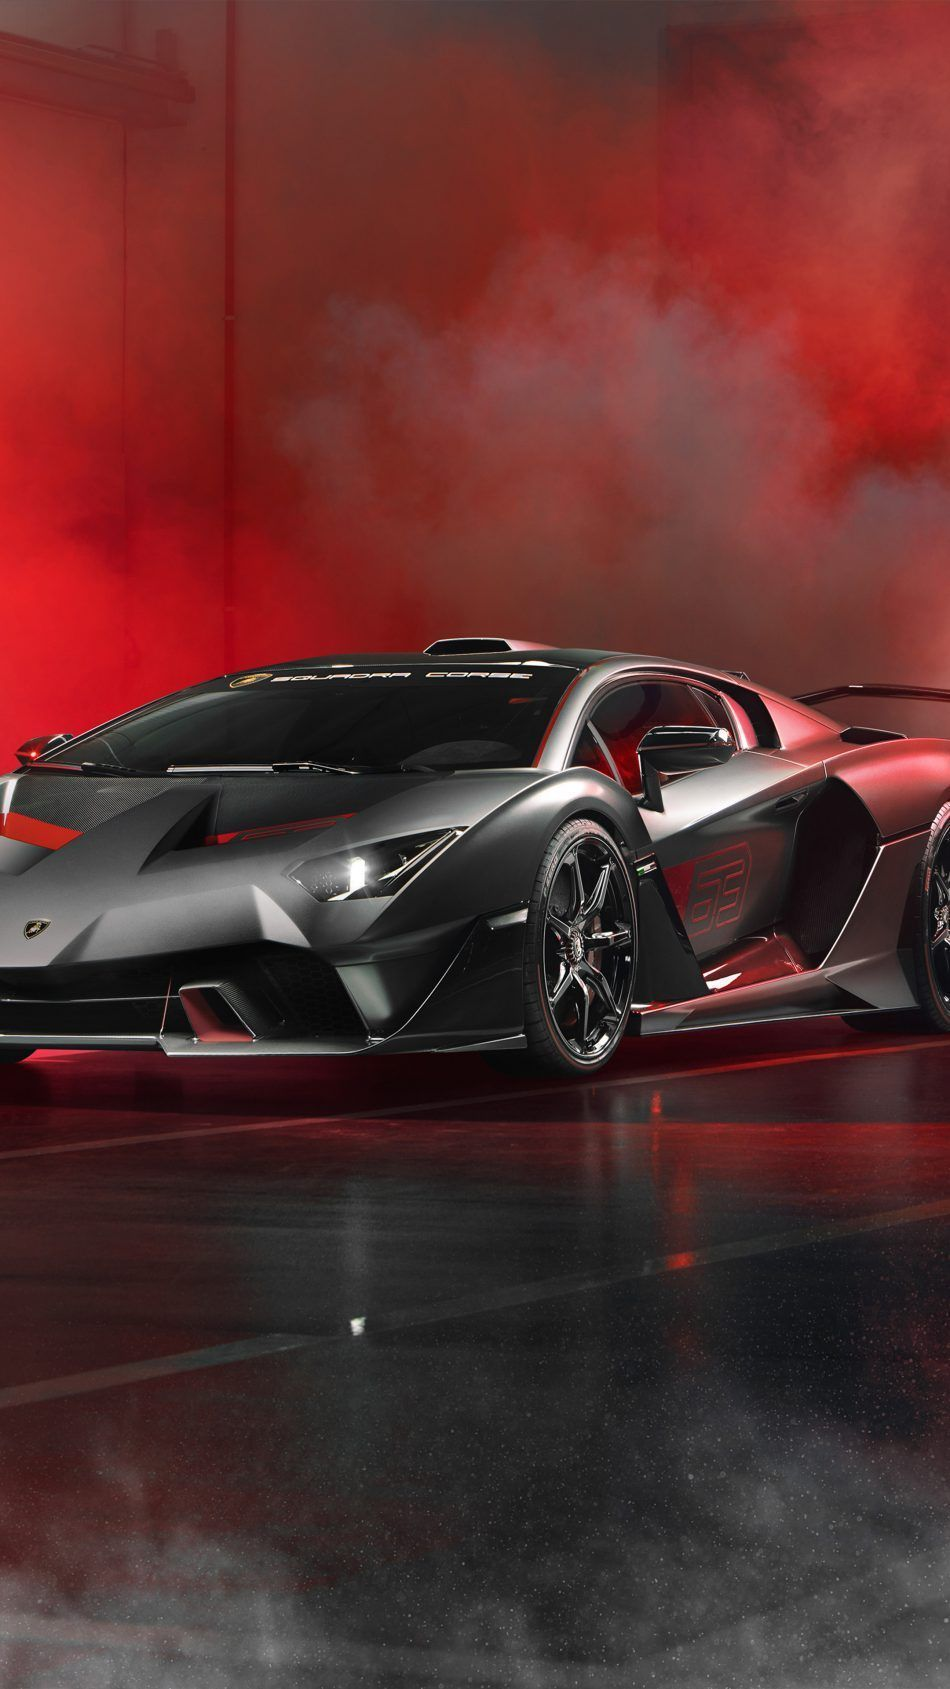 Lamborghini Sc18 Hyper Car 2019 Freie 4k Ultra Hd Wallpaper In 2020 Sports Car Wallpaper Lamborghini Cars Luxury Cars